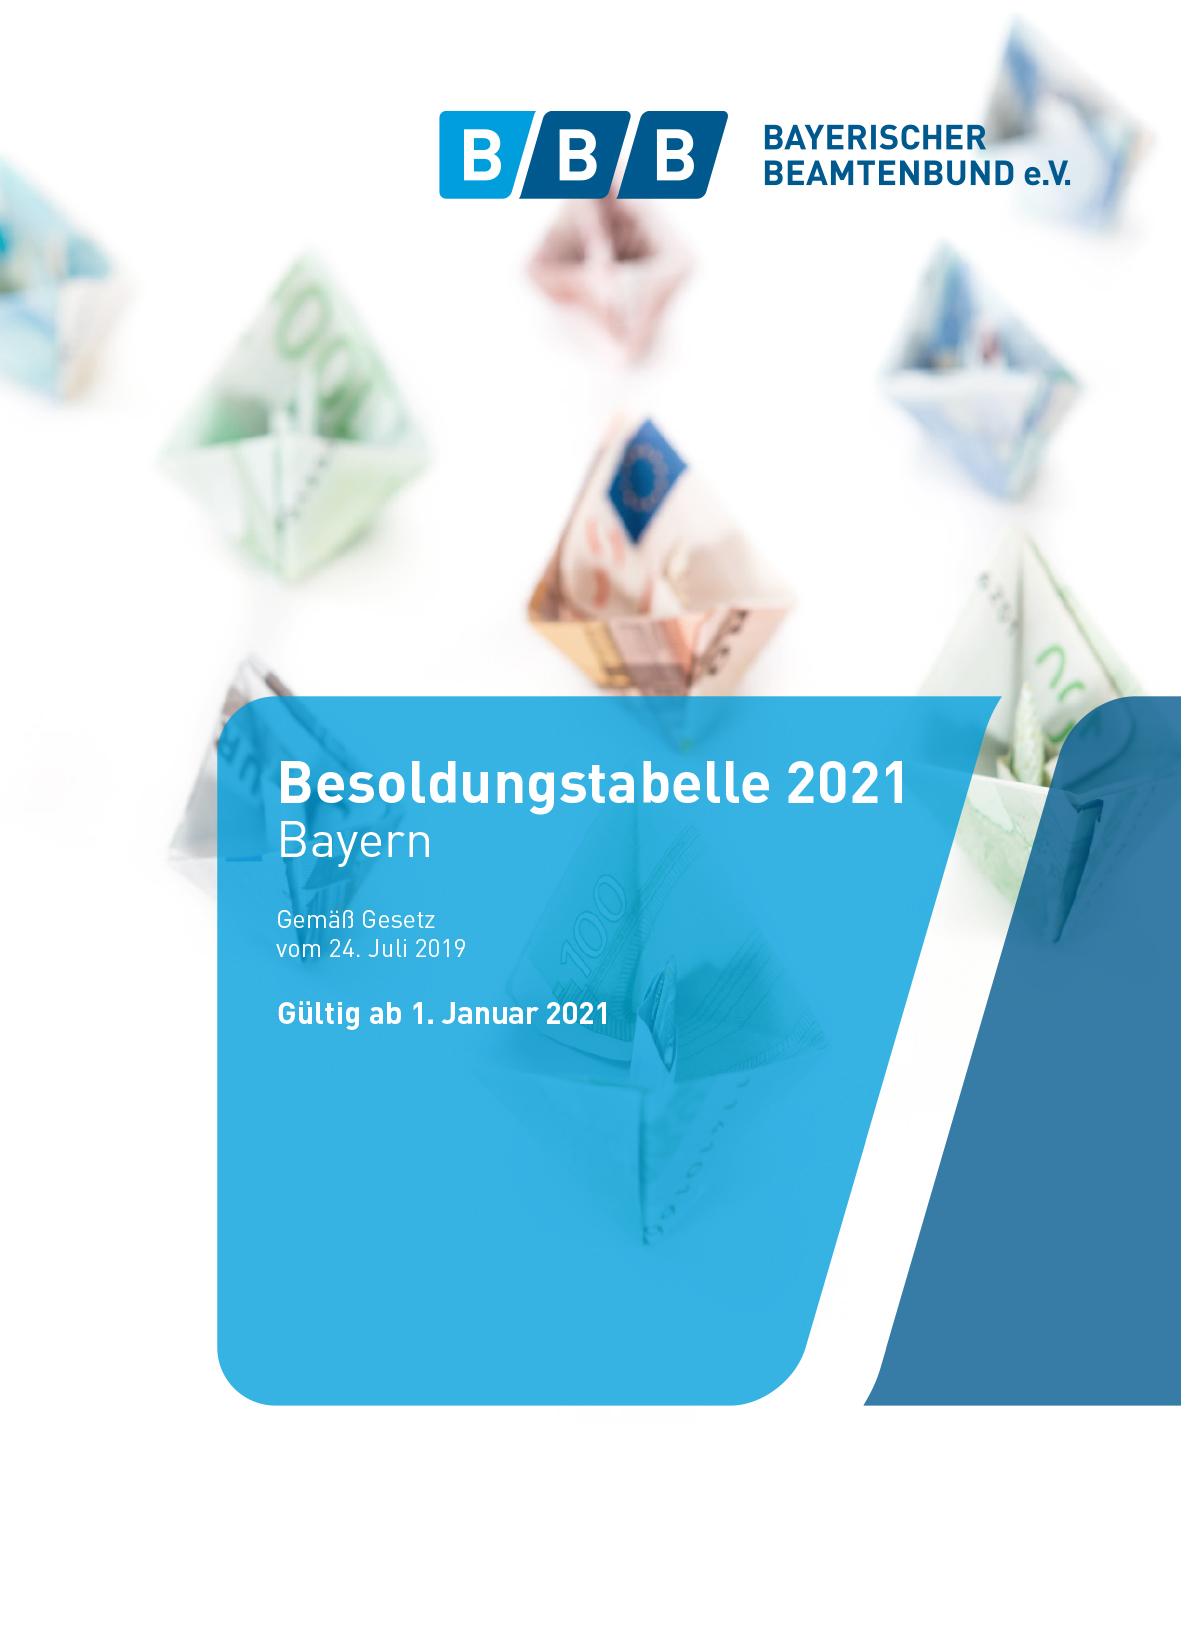 BBB-Besoldungstabelle-2021_394x139_Cover_web